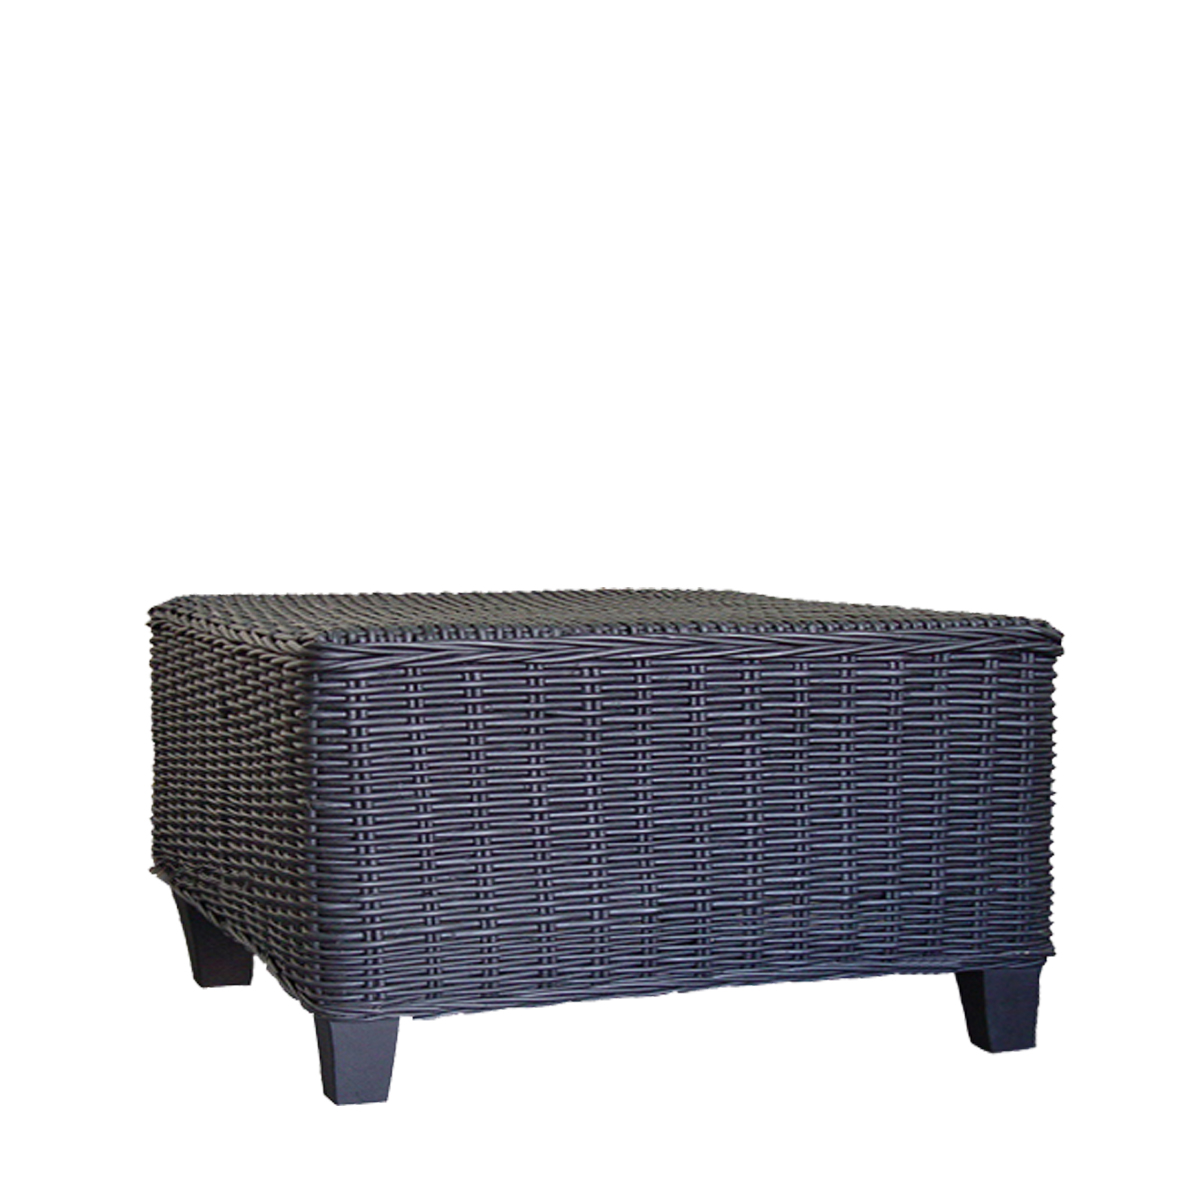 Black Wicker Coffee Table: DERBY 100x100cm Rattan Coffee Table